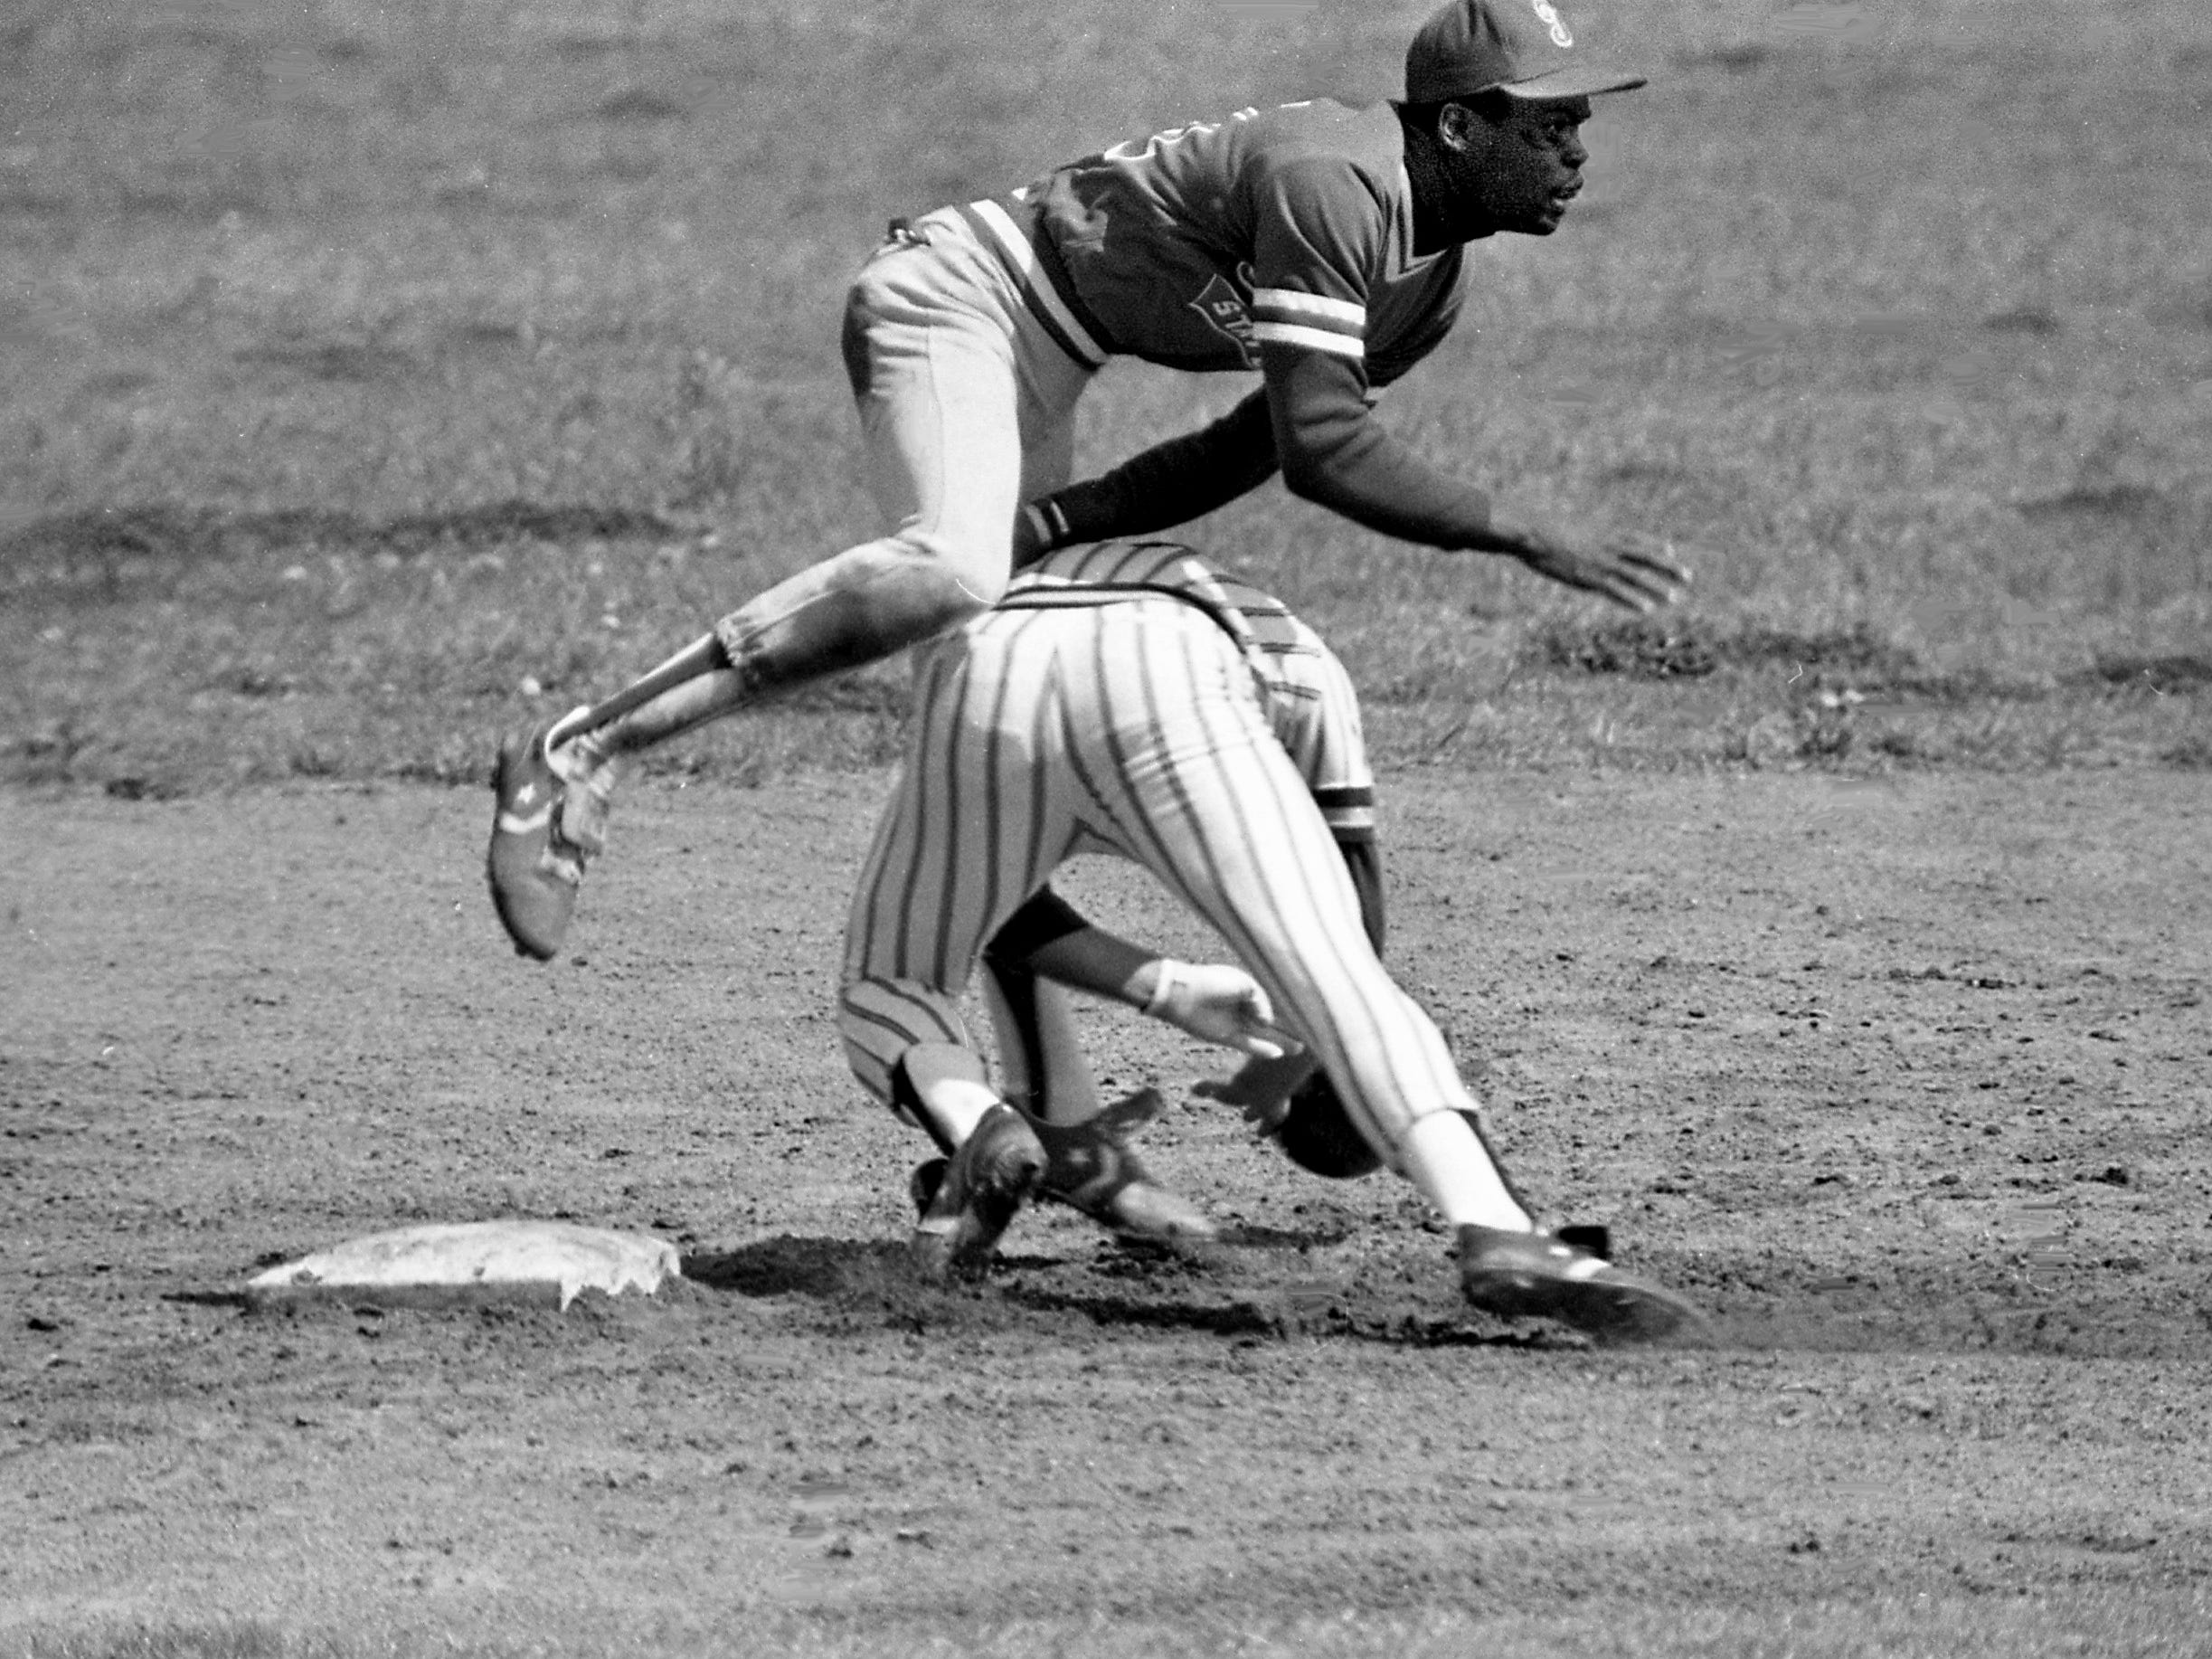 Tennessee State second baseman Kirk Forbes tumbles over a sliding Vanderbilt base runner Mike Pike, who is making an effort to break up a double play after being forced out at second base. The host Vanderbilt defeated Tennessee State 15-4 at McGugin Field before later edging Austin Peay 4-2 in an unusual doubleheader April 3, 1979.